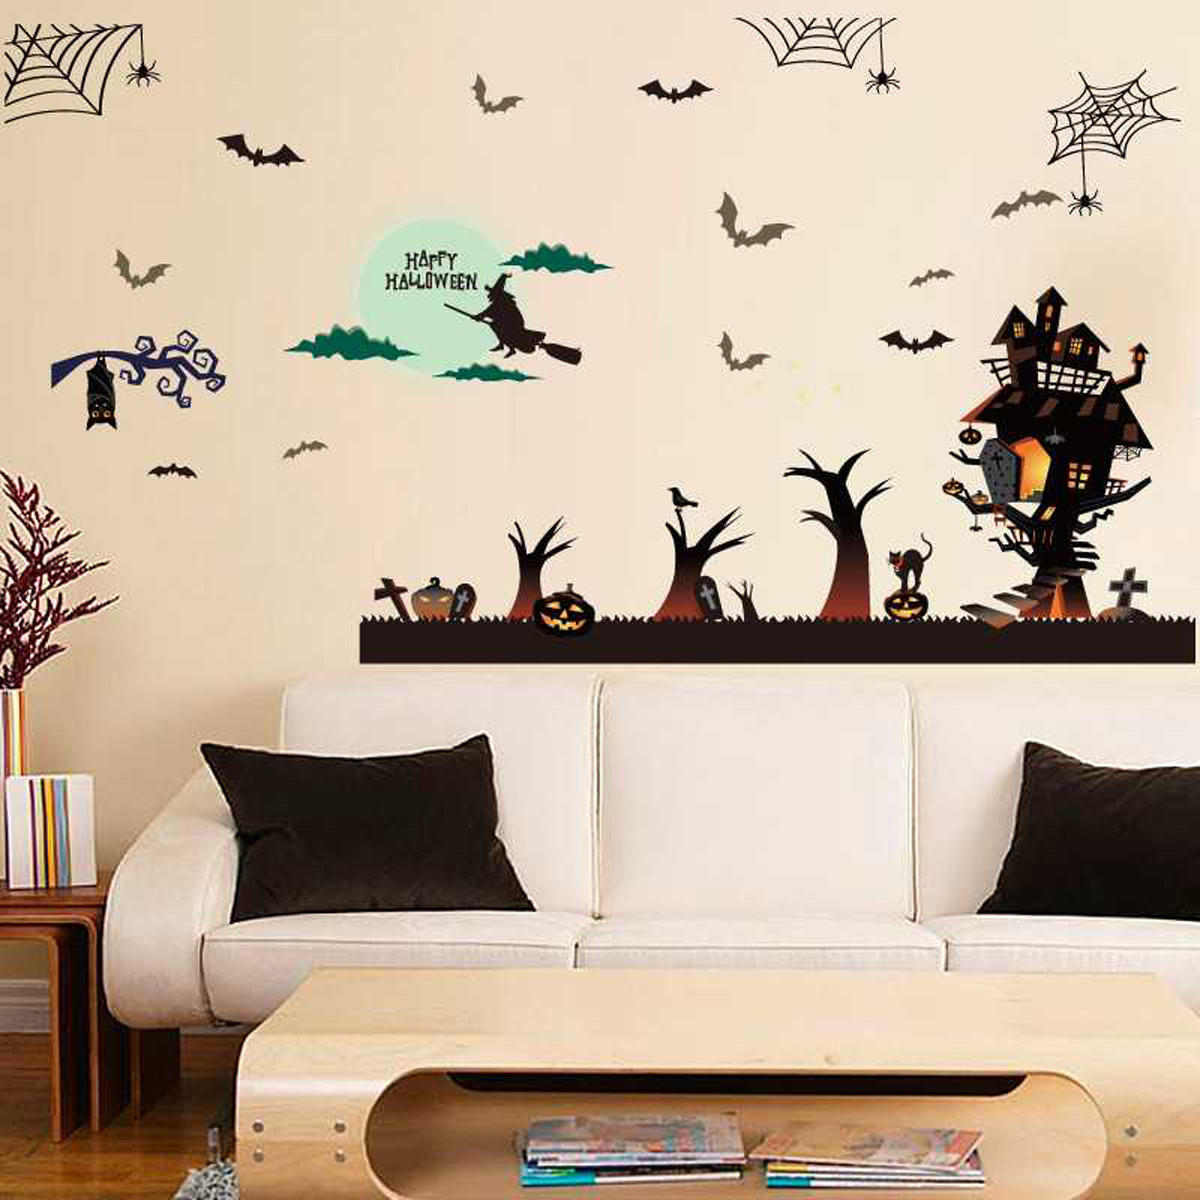 Bat Spider Web Wall Sticker For Home Window Decor At Banggood